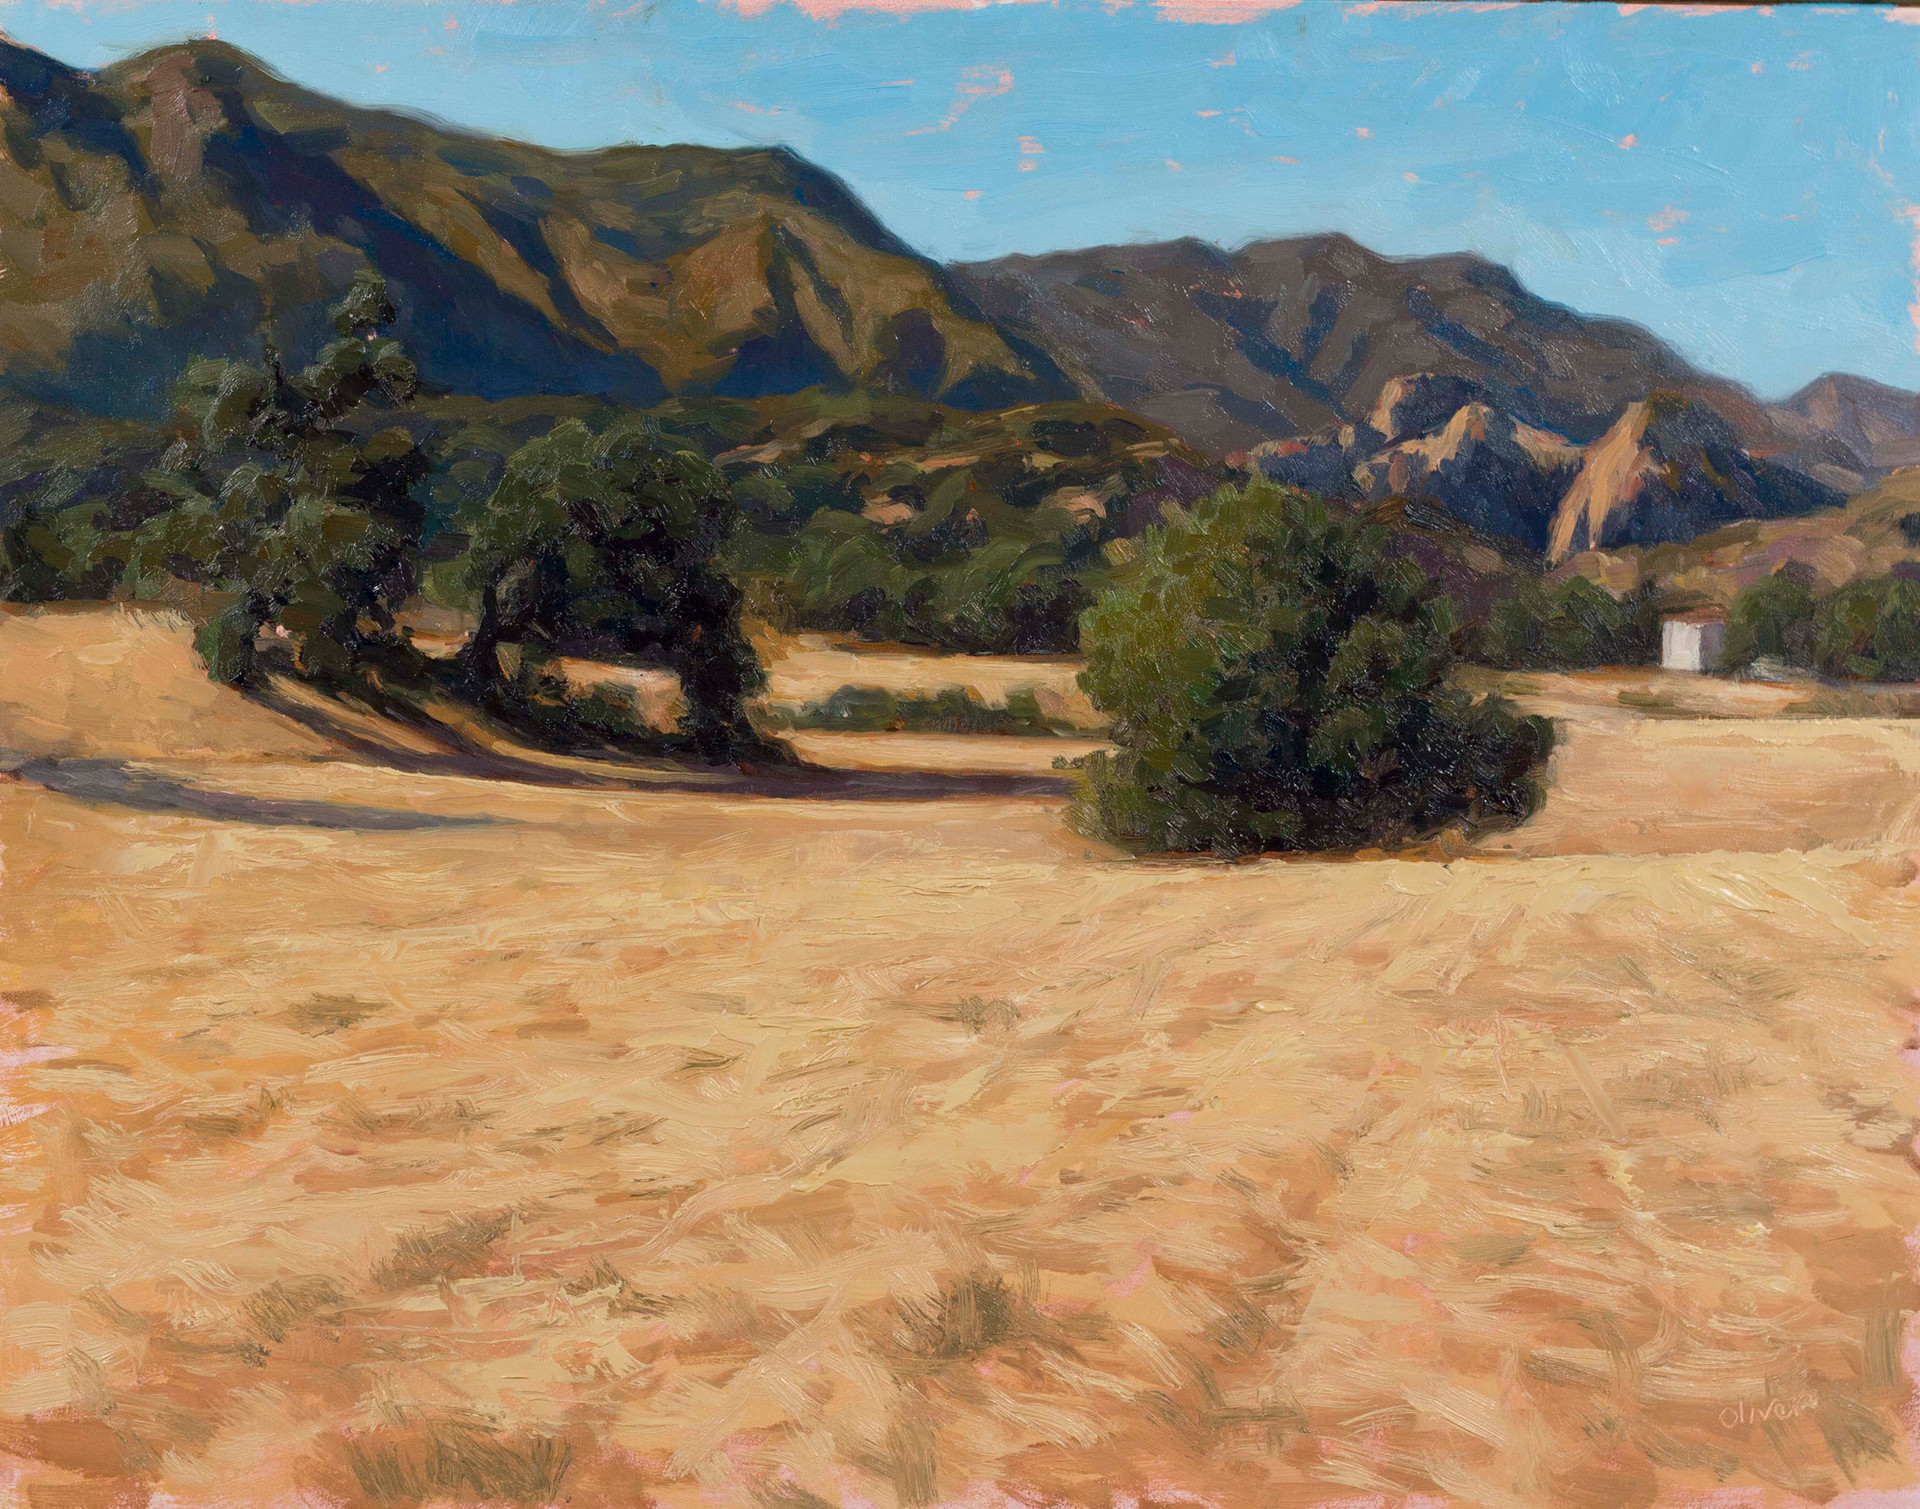 Santa monica Mountains from King Gillette Ranch.jpg